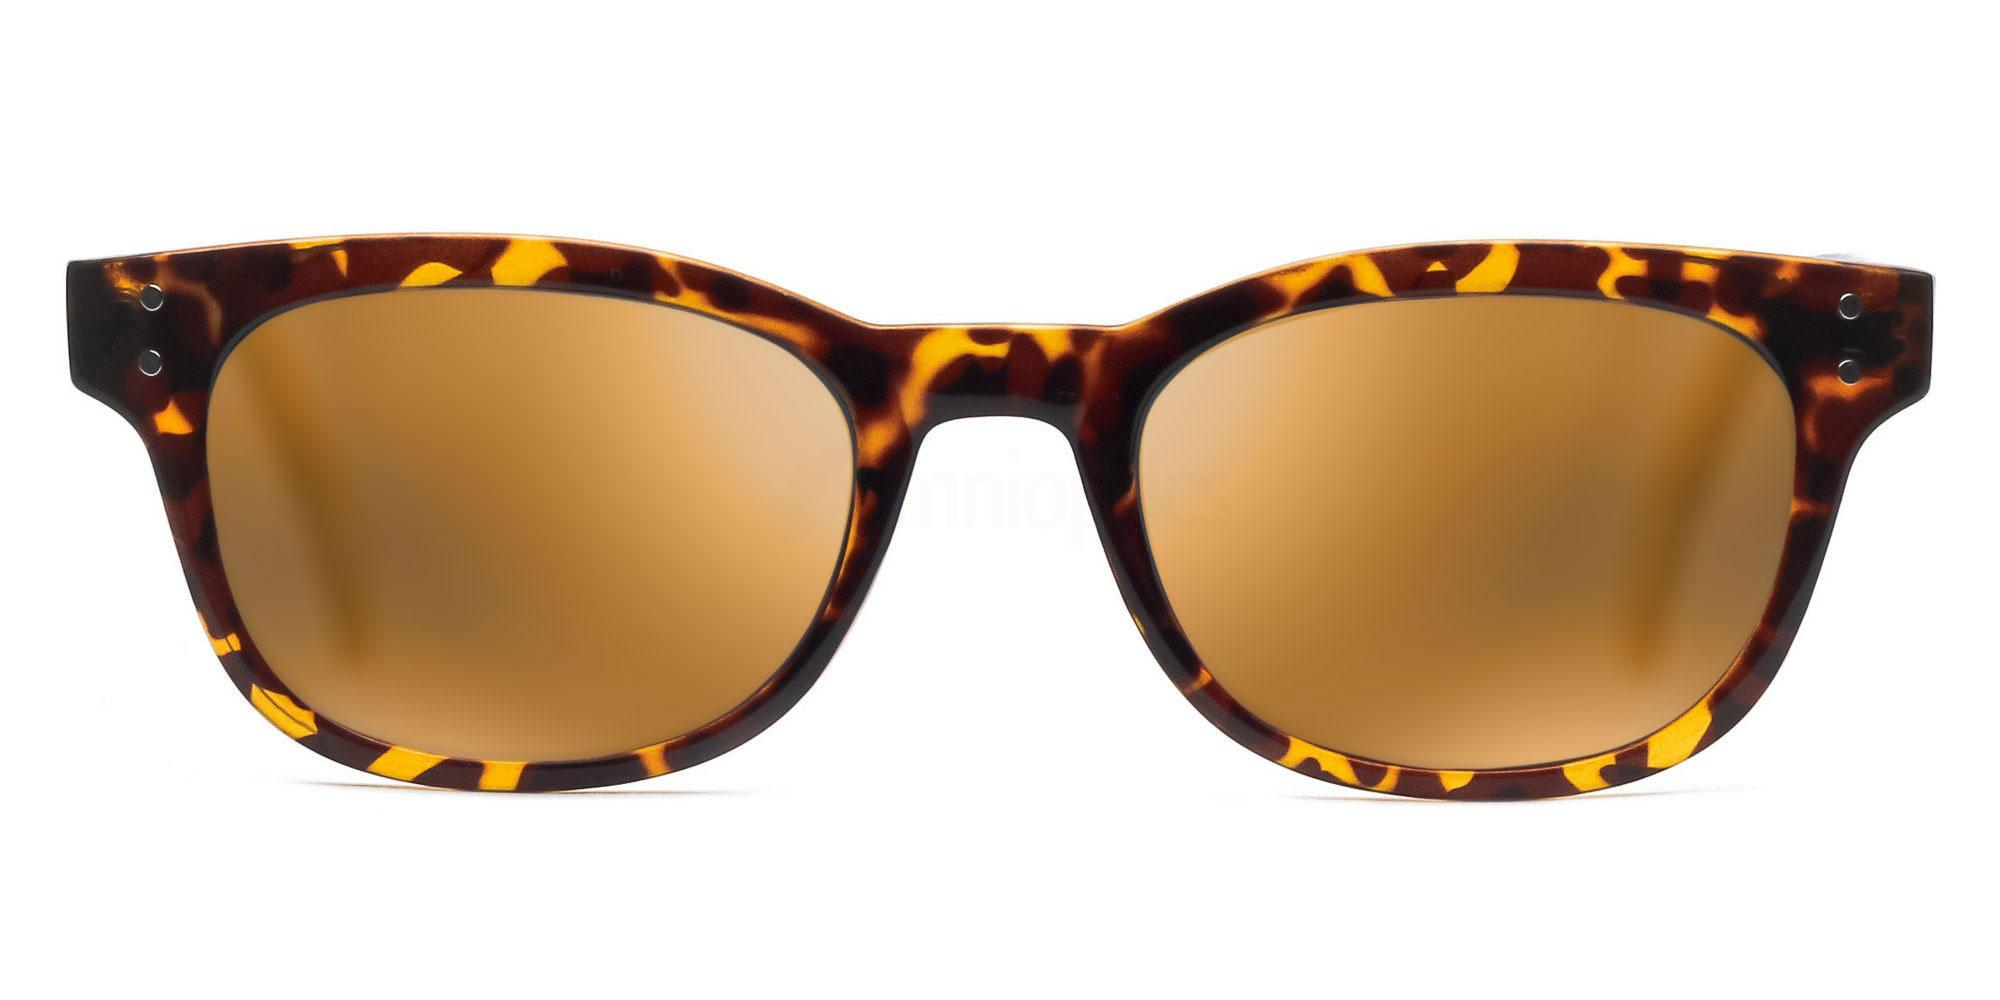 C04 Polarized Grey with Orange Mirror P2249 Havana (Mirrored Polarized) , Savannah